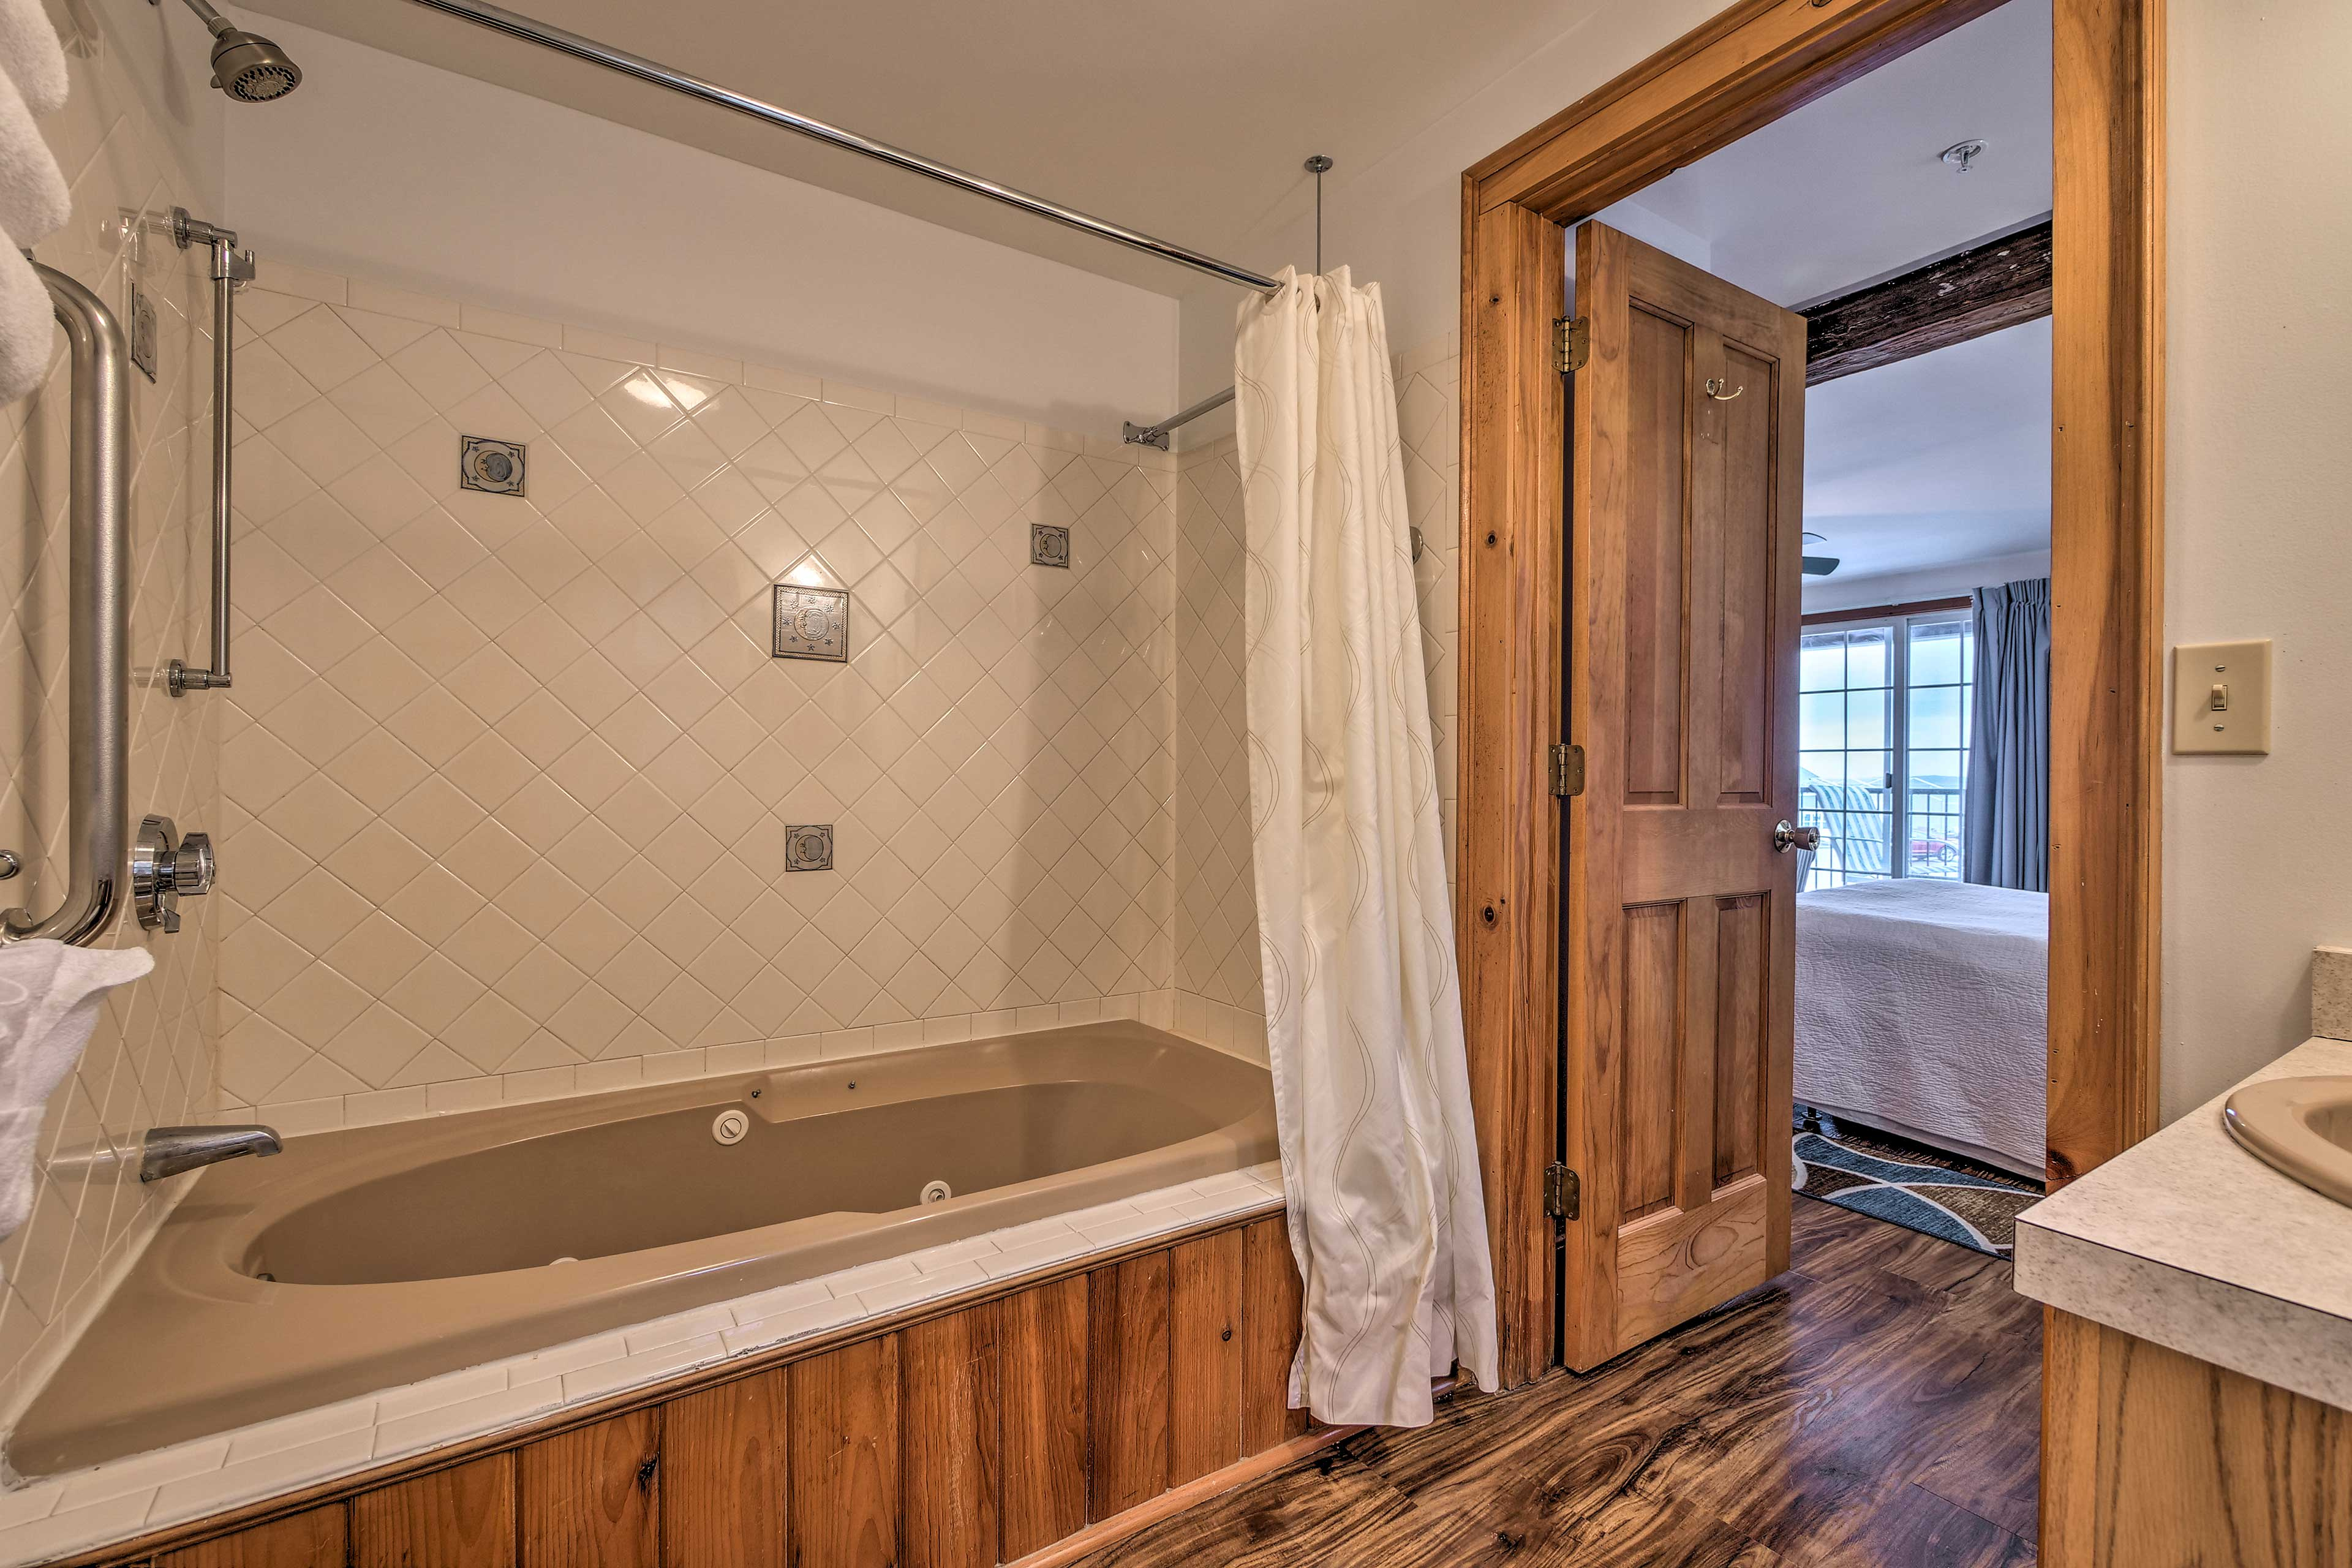 Soak in the Jacuzzi tub after a long day!